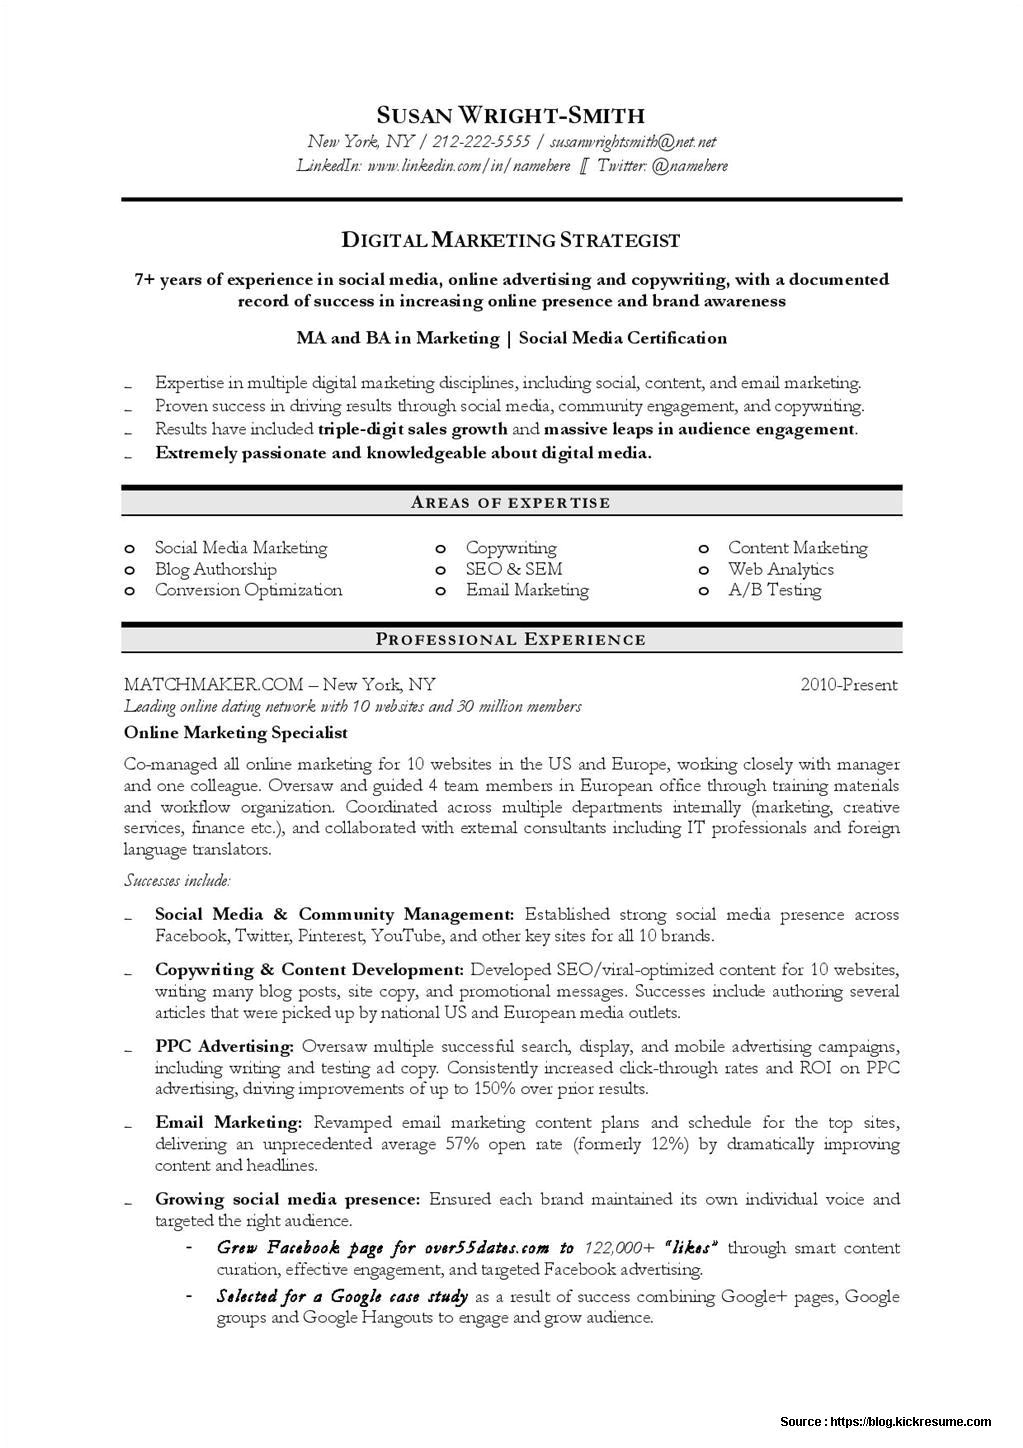 Free Marketing Resume Templates Digital Marketing Resume Sample Resume Resume Examples